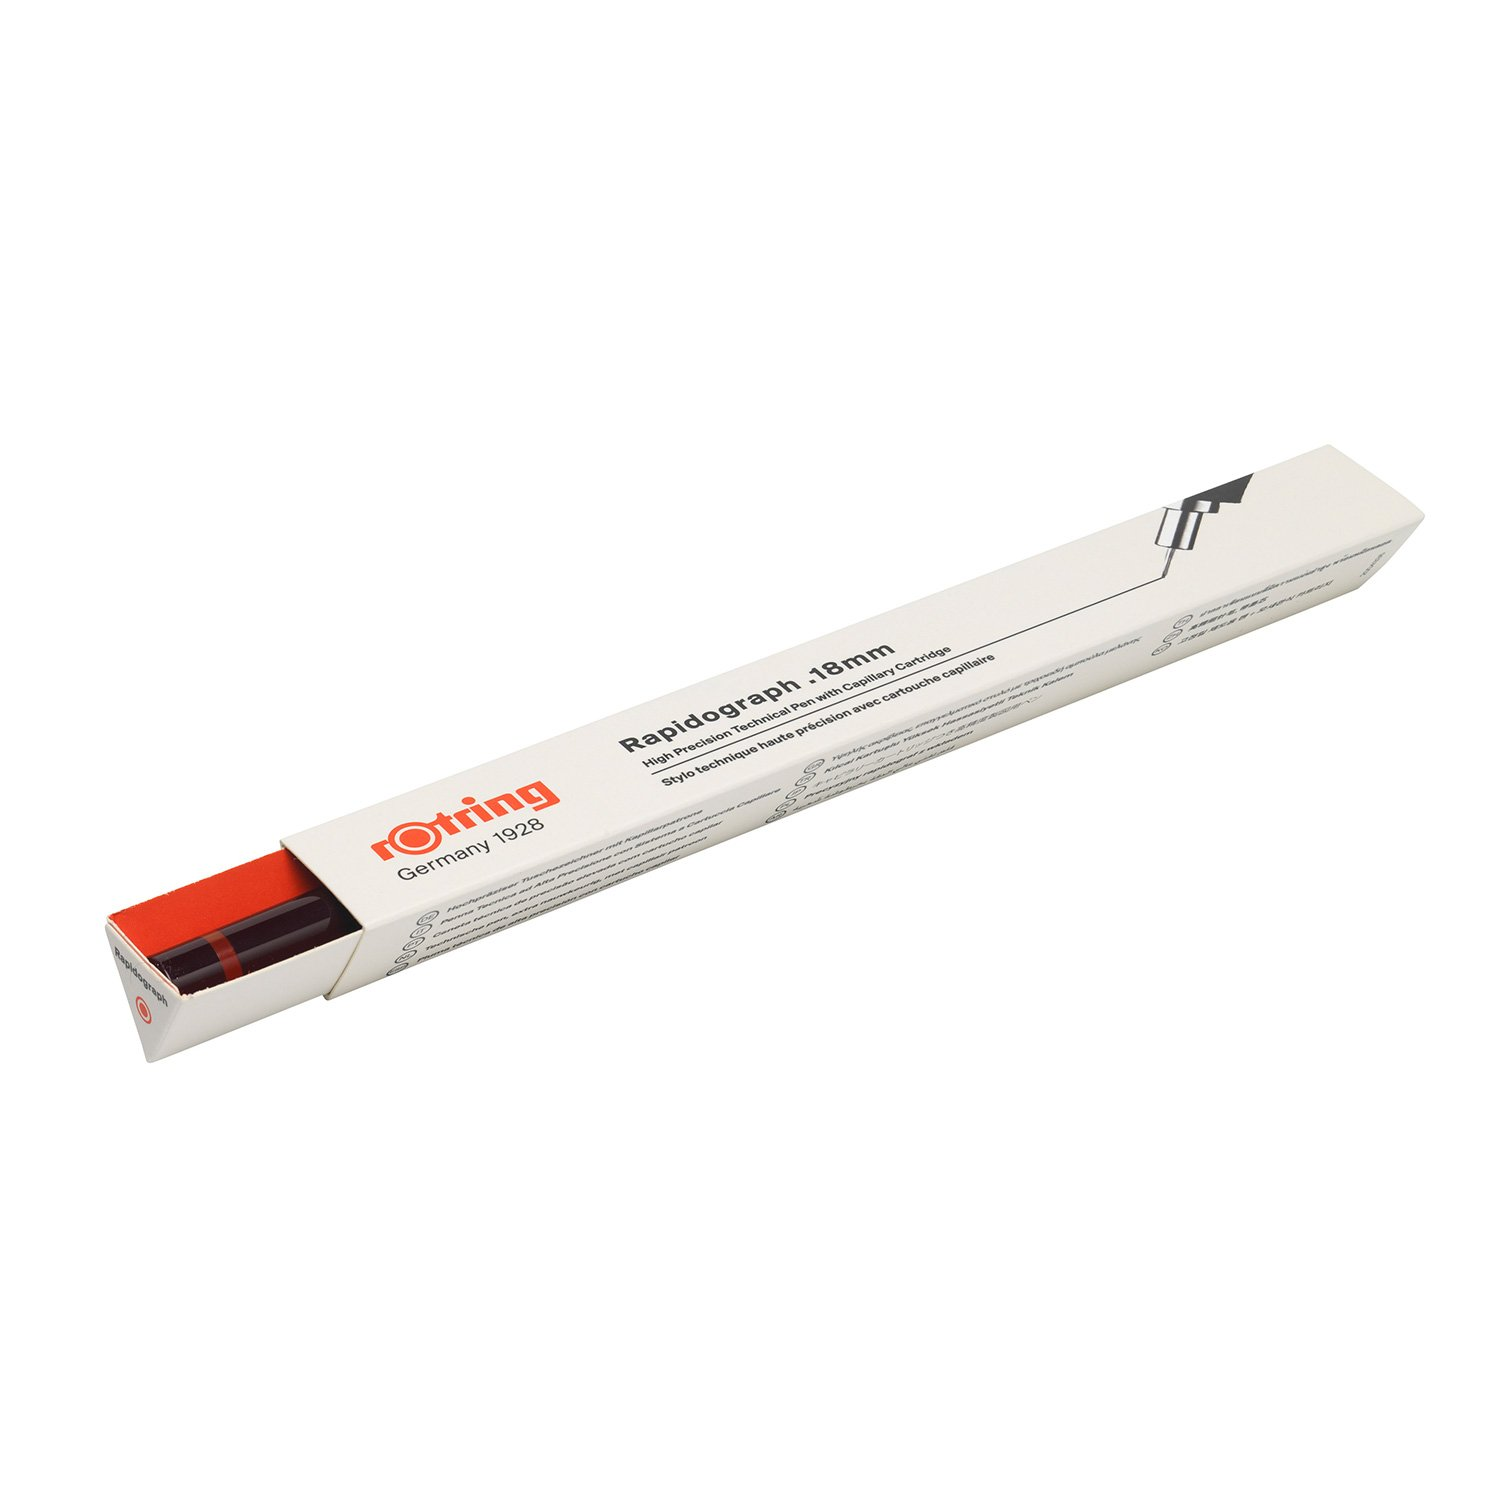 Rotring Rapidograph 0.18mm Technical Drawing Pen (S0203150) by Rotring (Image #6)